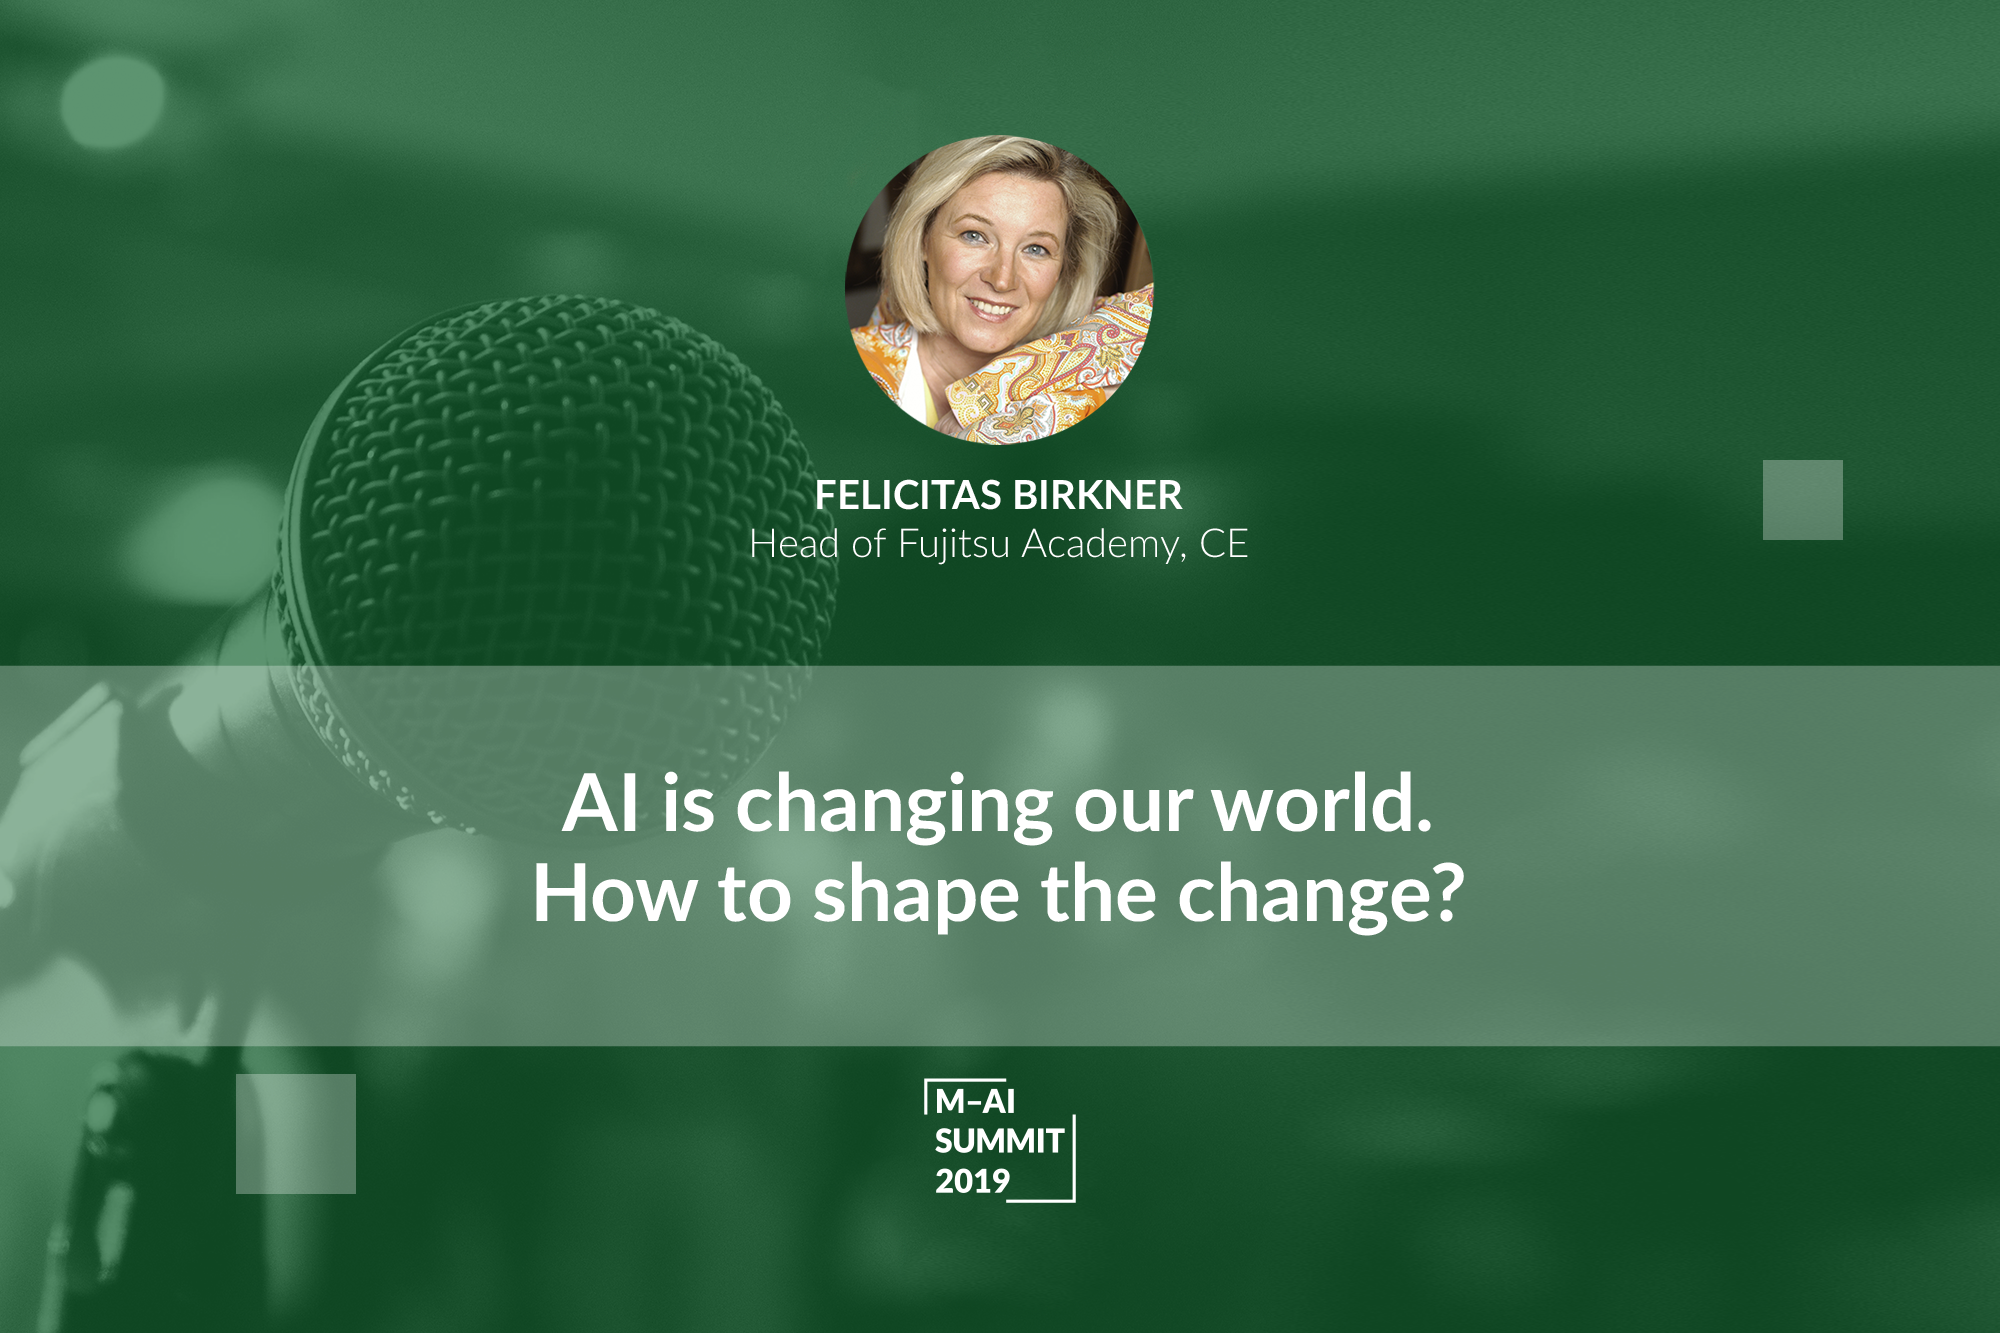 Calling for Attention, Responsibility and Trust. Felicitas Birkner Shows How to Face the Rapid Changes of AI